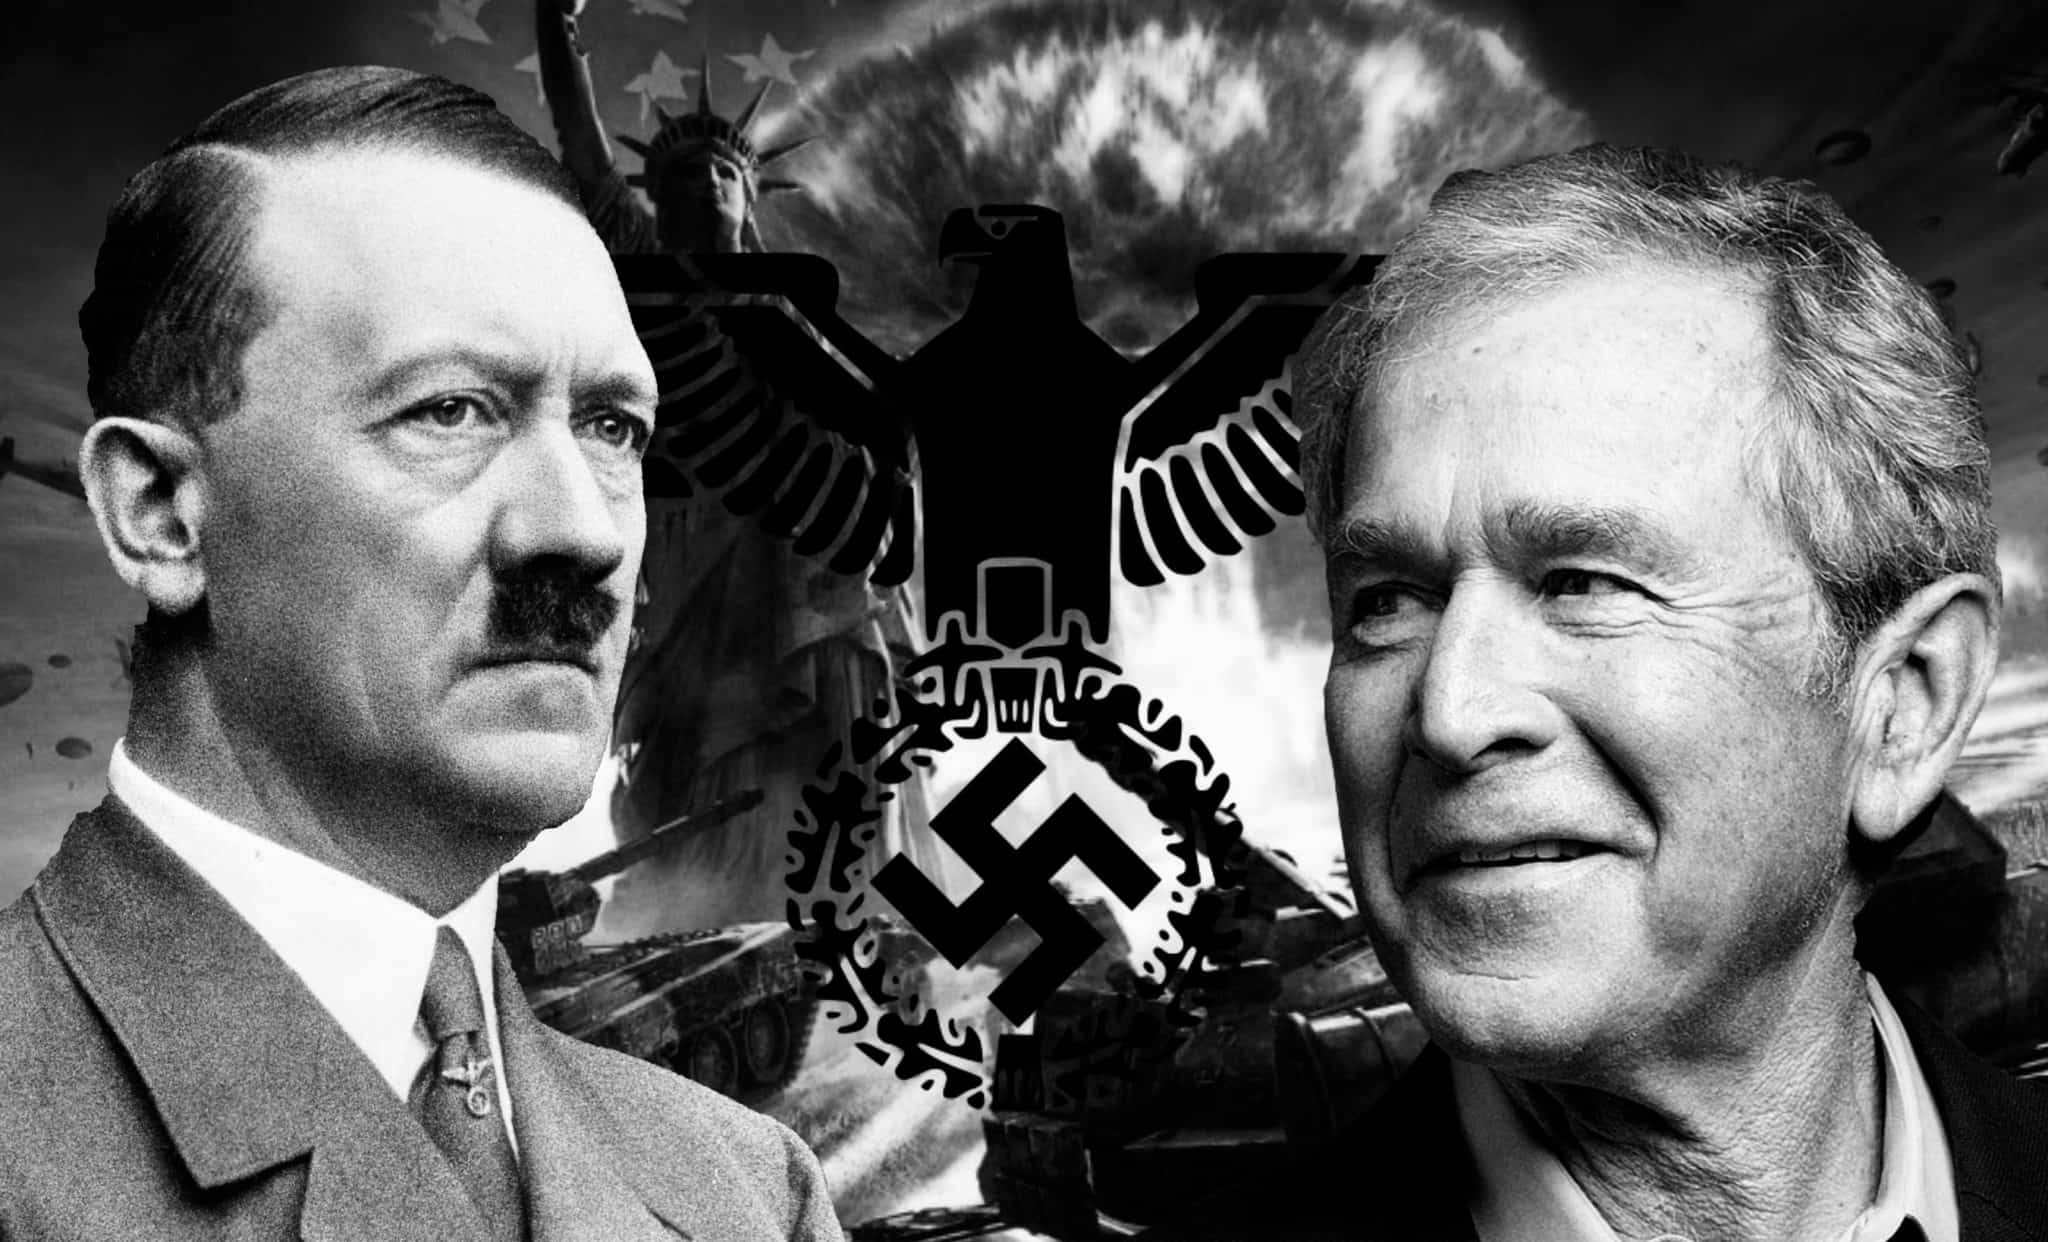 10 False Flags Operations that Shaped our World